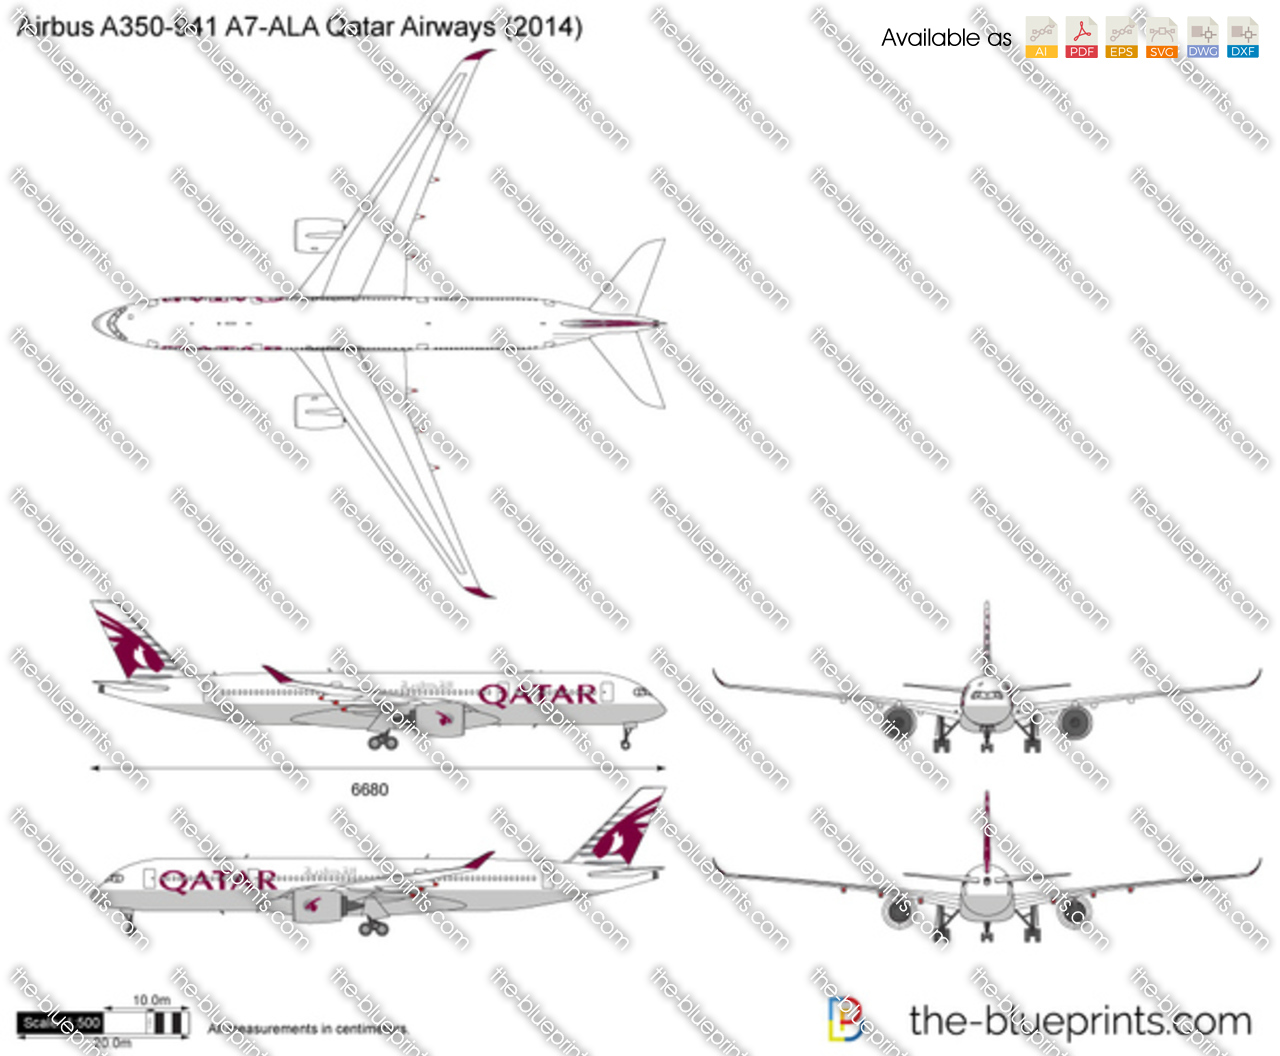 Airbus A350-941 A7-ALA Qatar Airways 2017